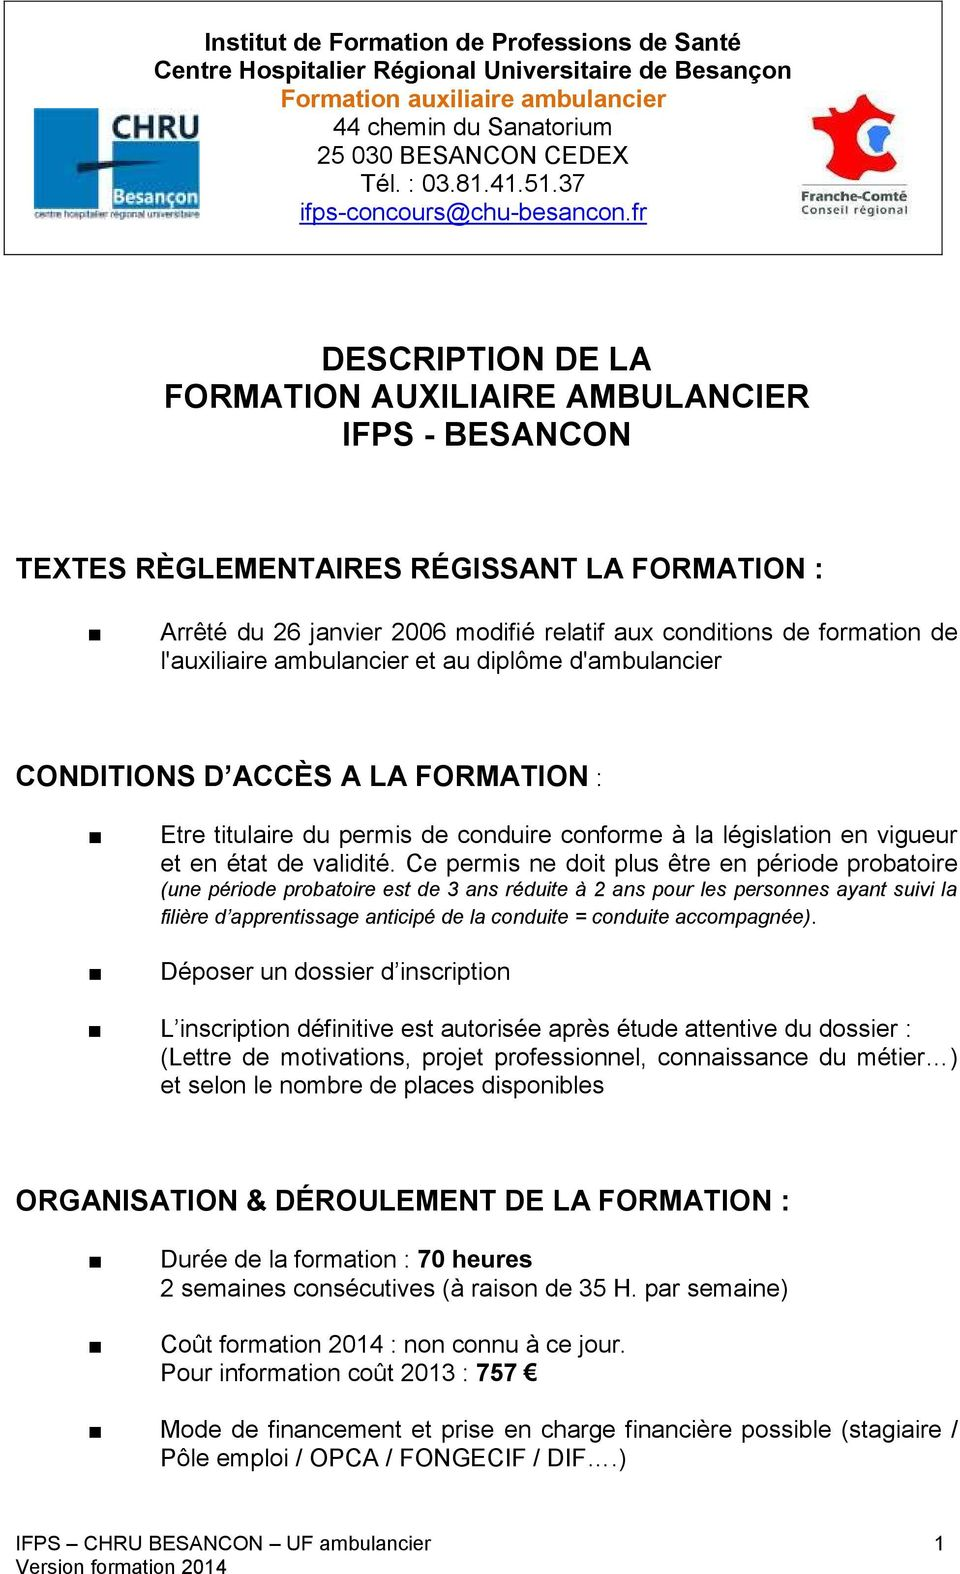 description du metier d auxiliaire ambulancier ifps besancon pdf. Black Bedroom Furniture Sets. Home Design Ideas